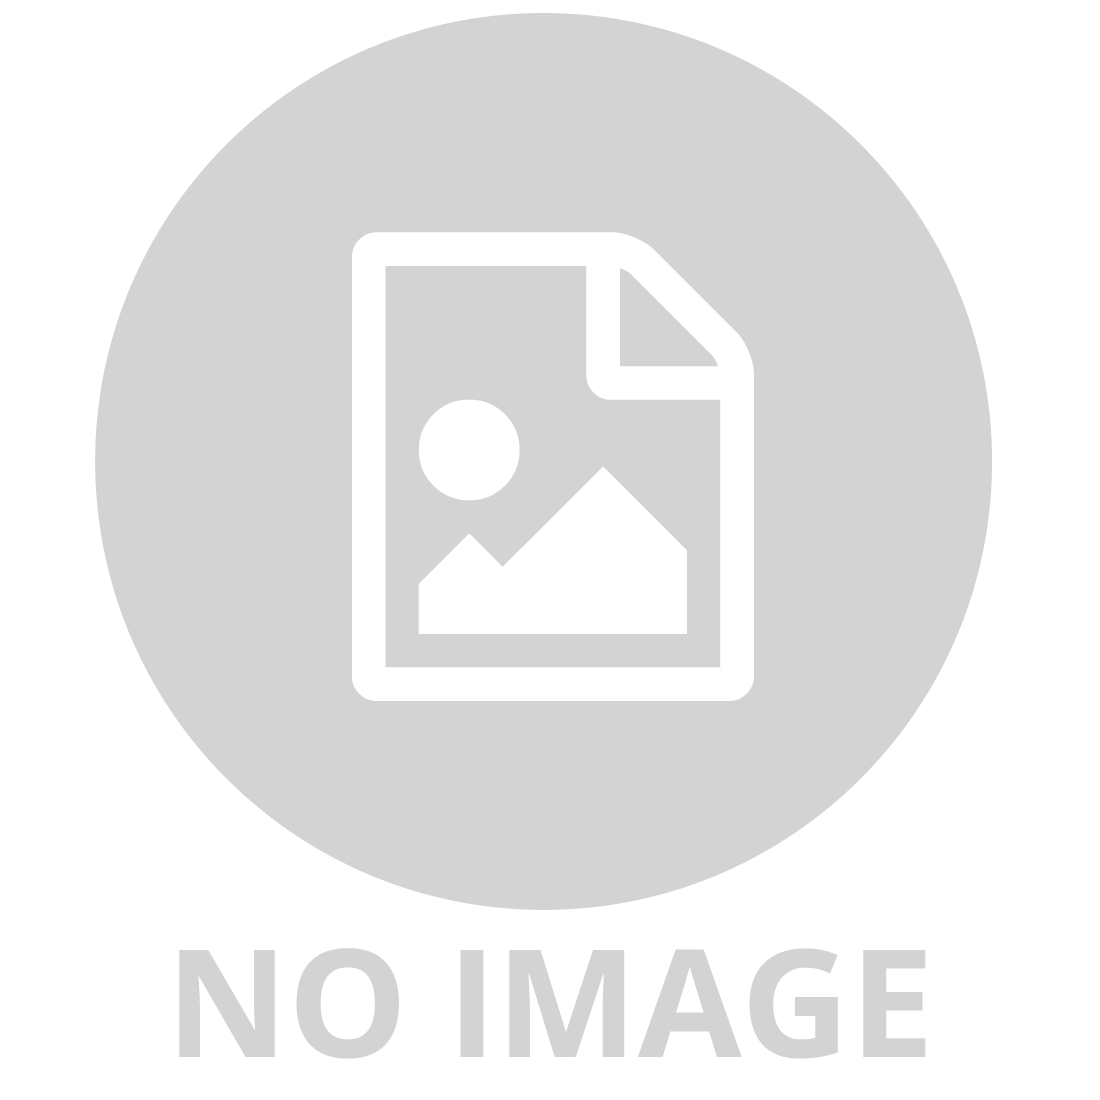 DUCK/DOLPHIN BATH TOY